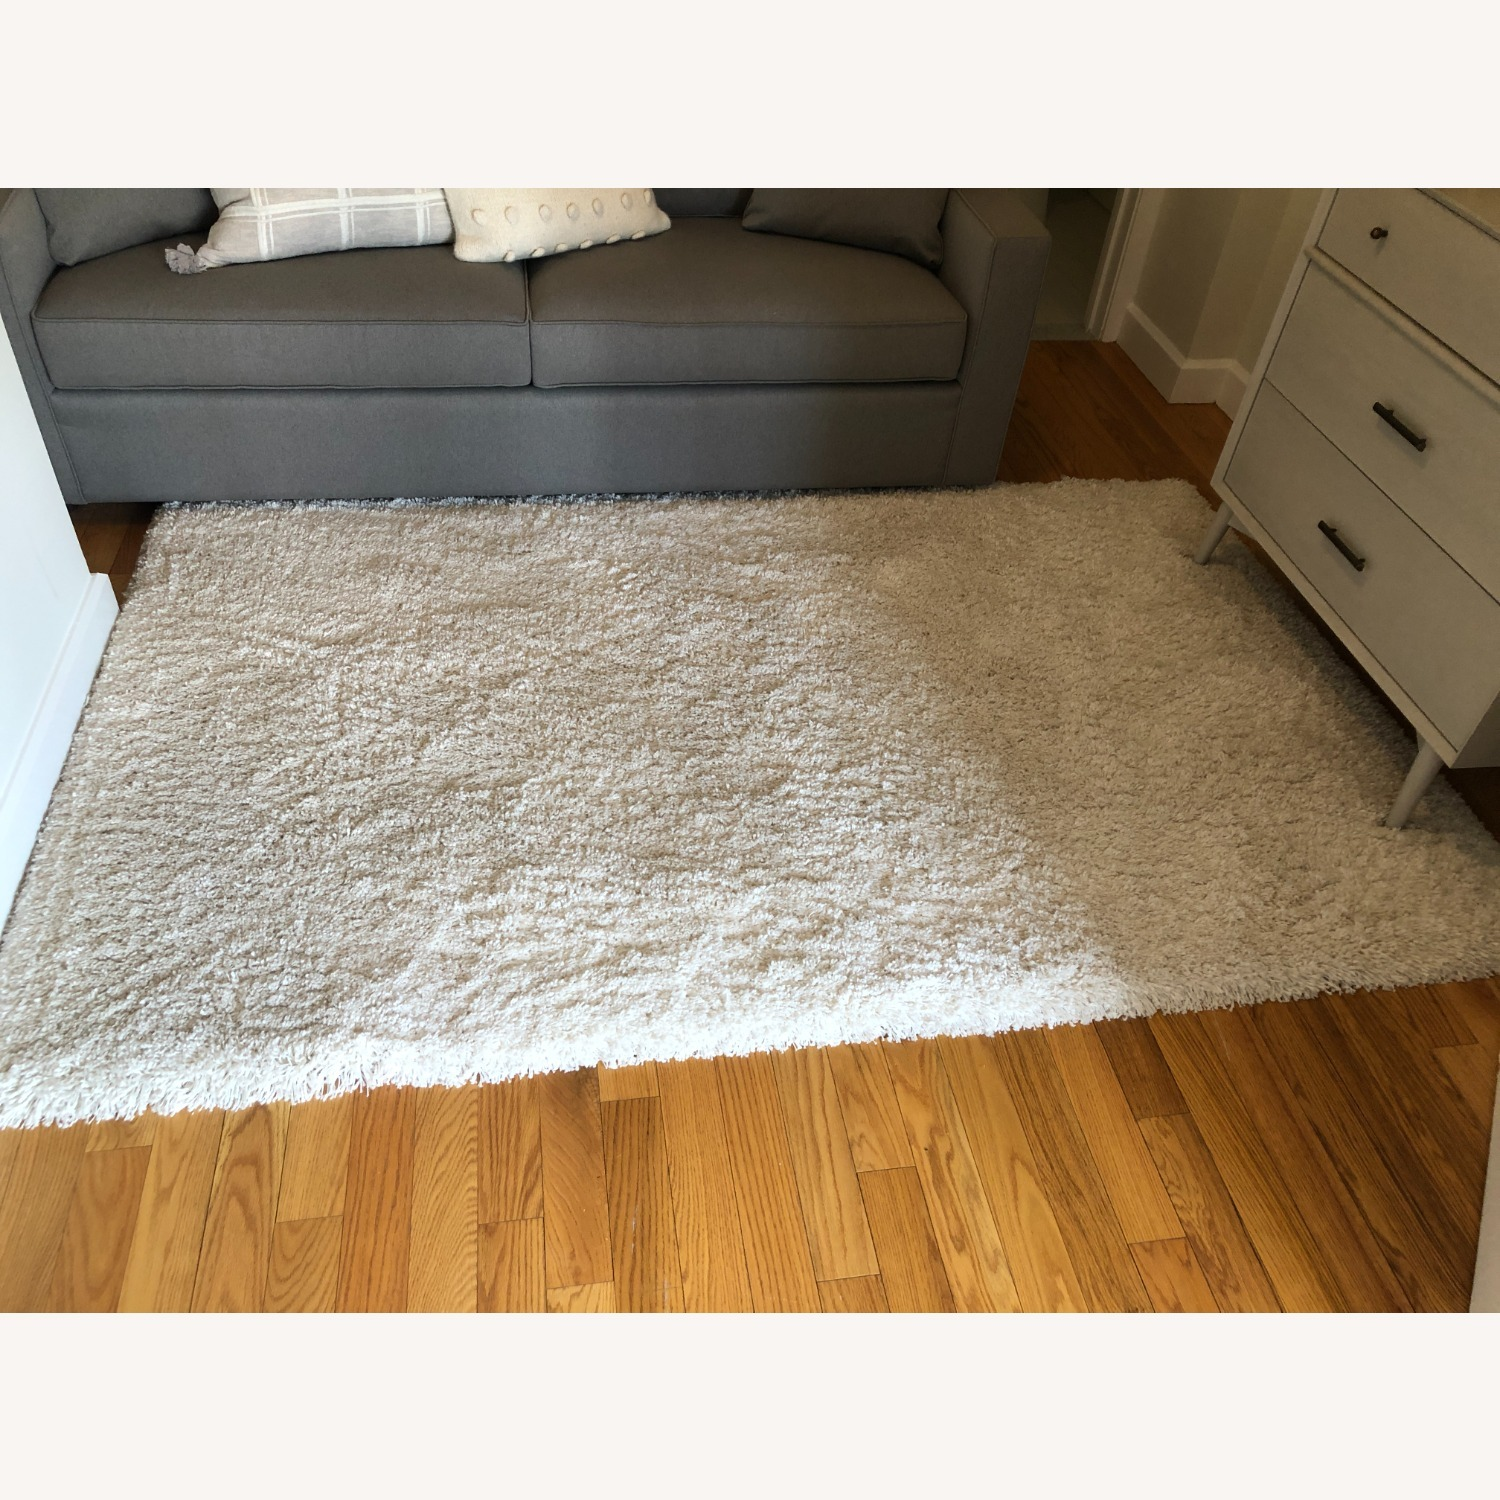 Crate & Barrel Memphis White 5x8' Rug - image-1